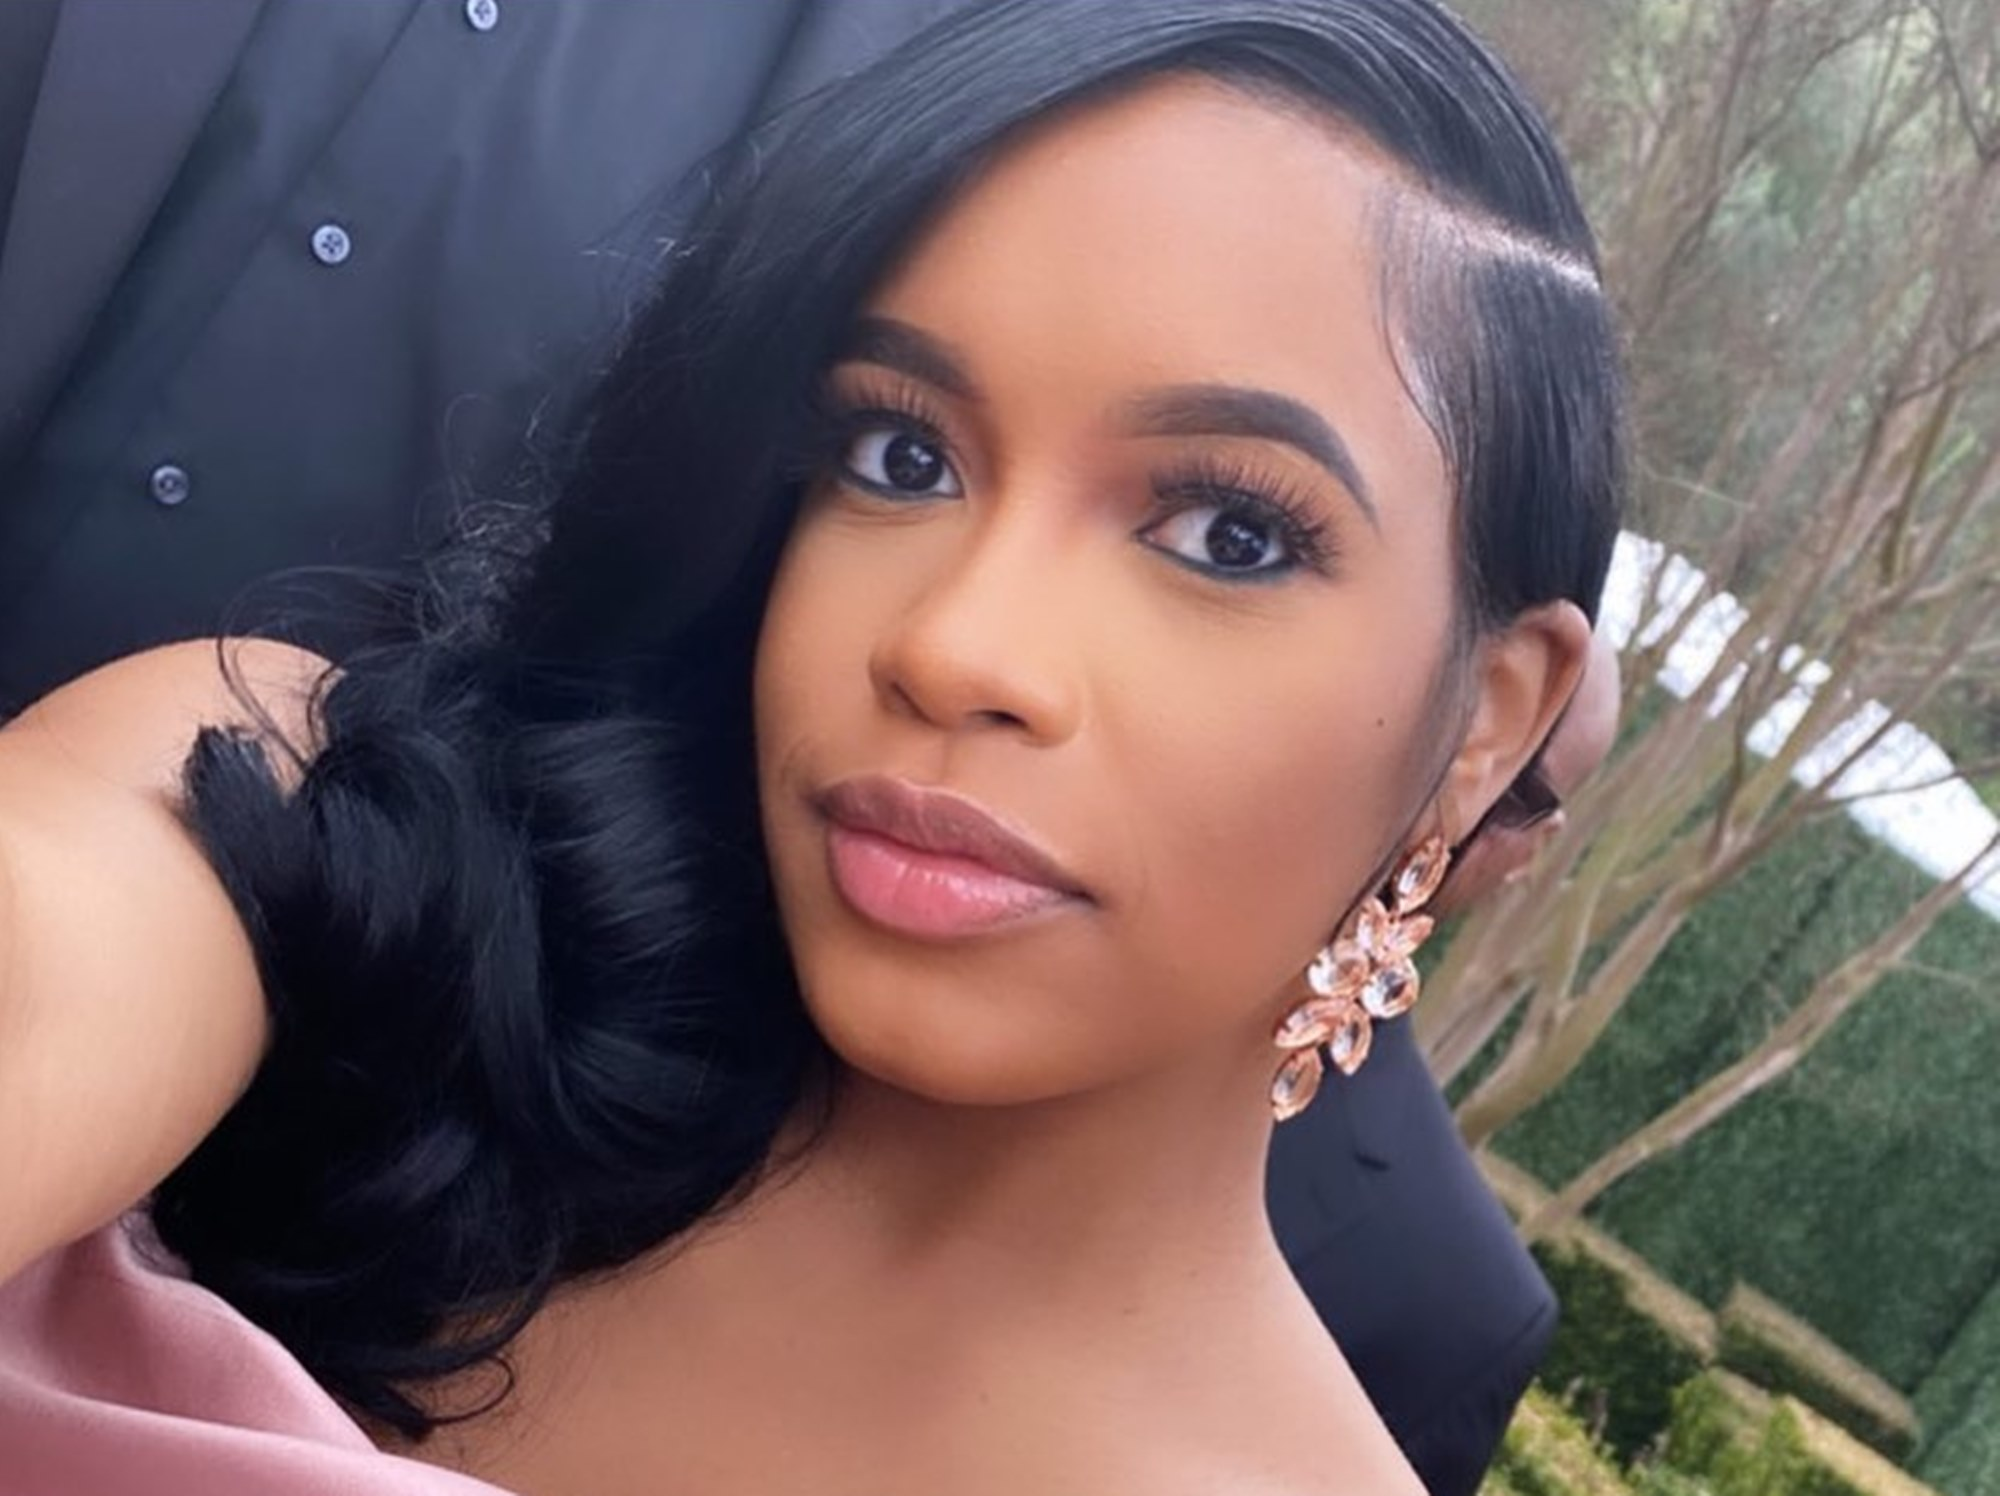 meek-mills-baby-mama-milan-harris-shows-him-what-he-is-missing-in-shady-photos